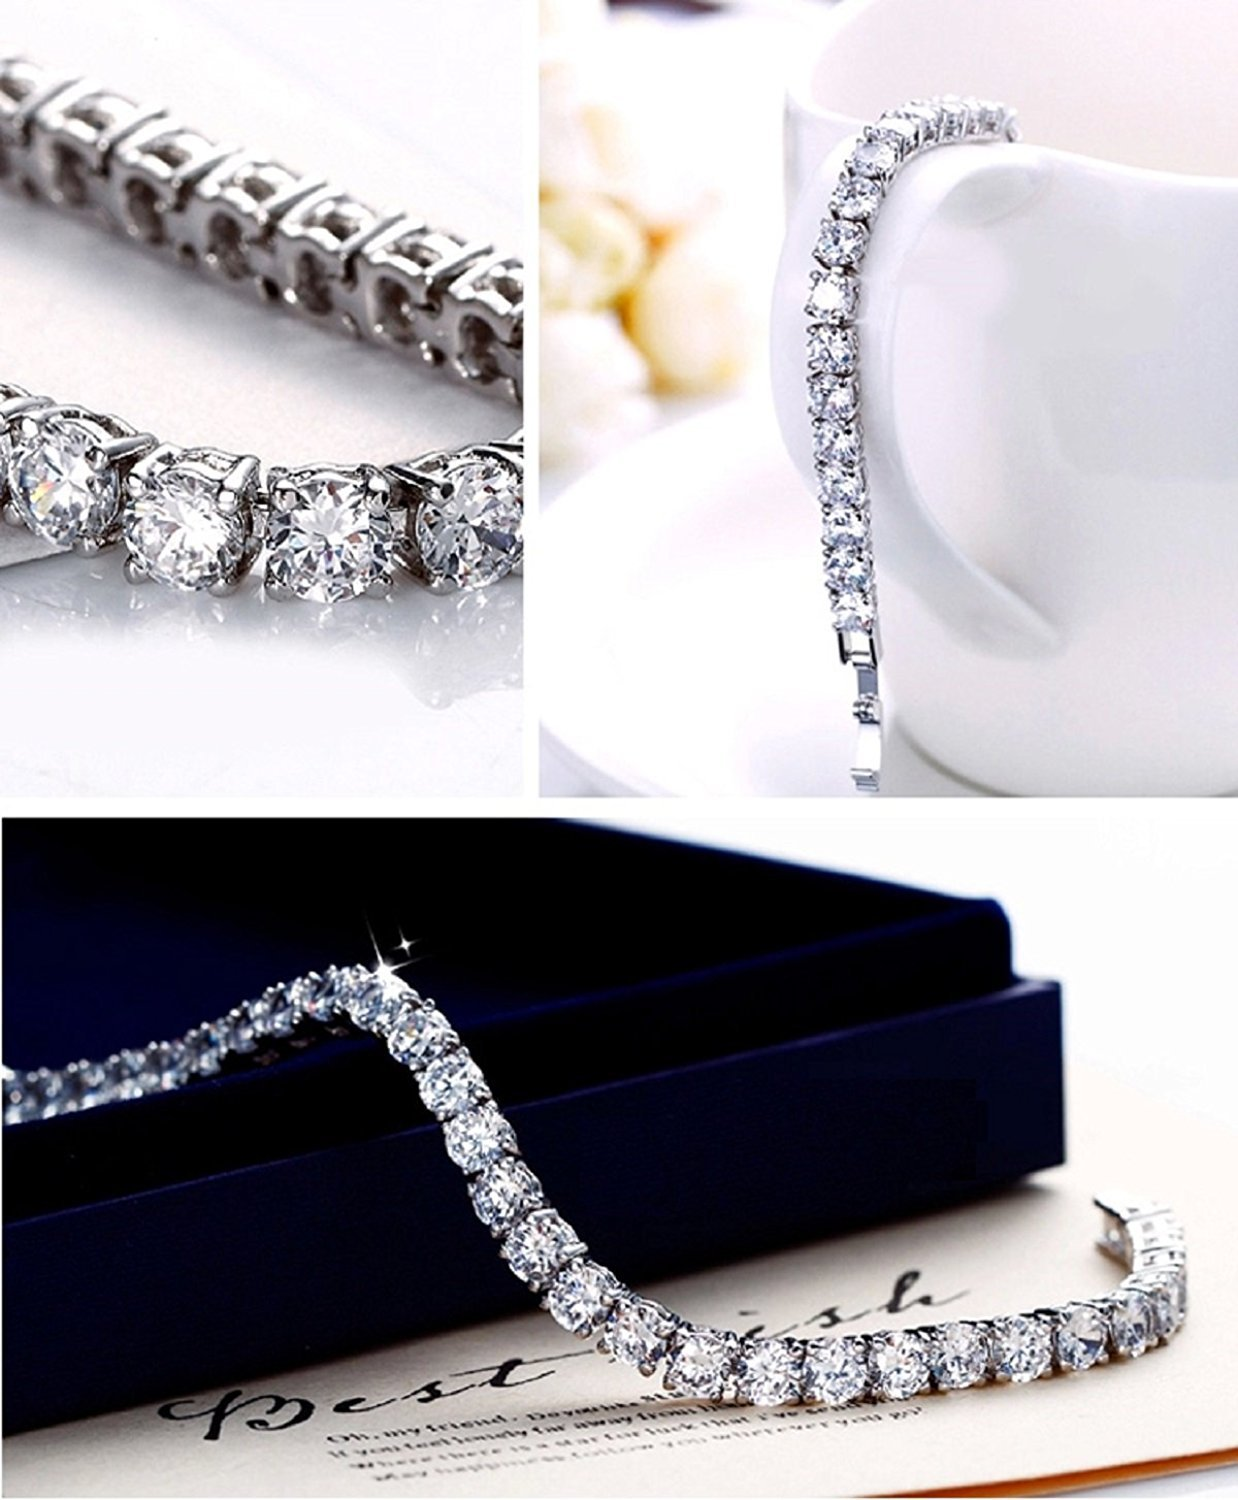 Meetyoo Tennis Bracelet With Swarovski Elements Crystal Jewelry Women Lady Zirconia Platinum Plated Bangle for her by Meetyoo (Image #3)